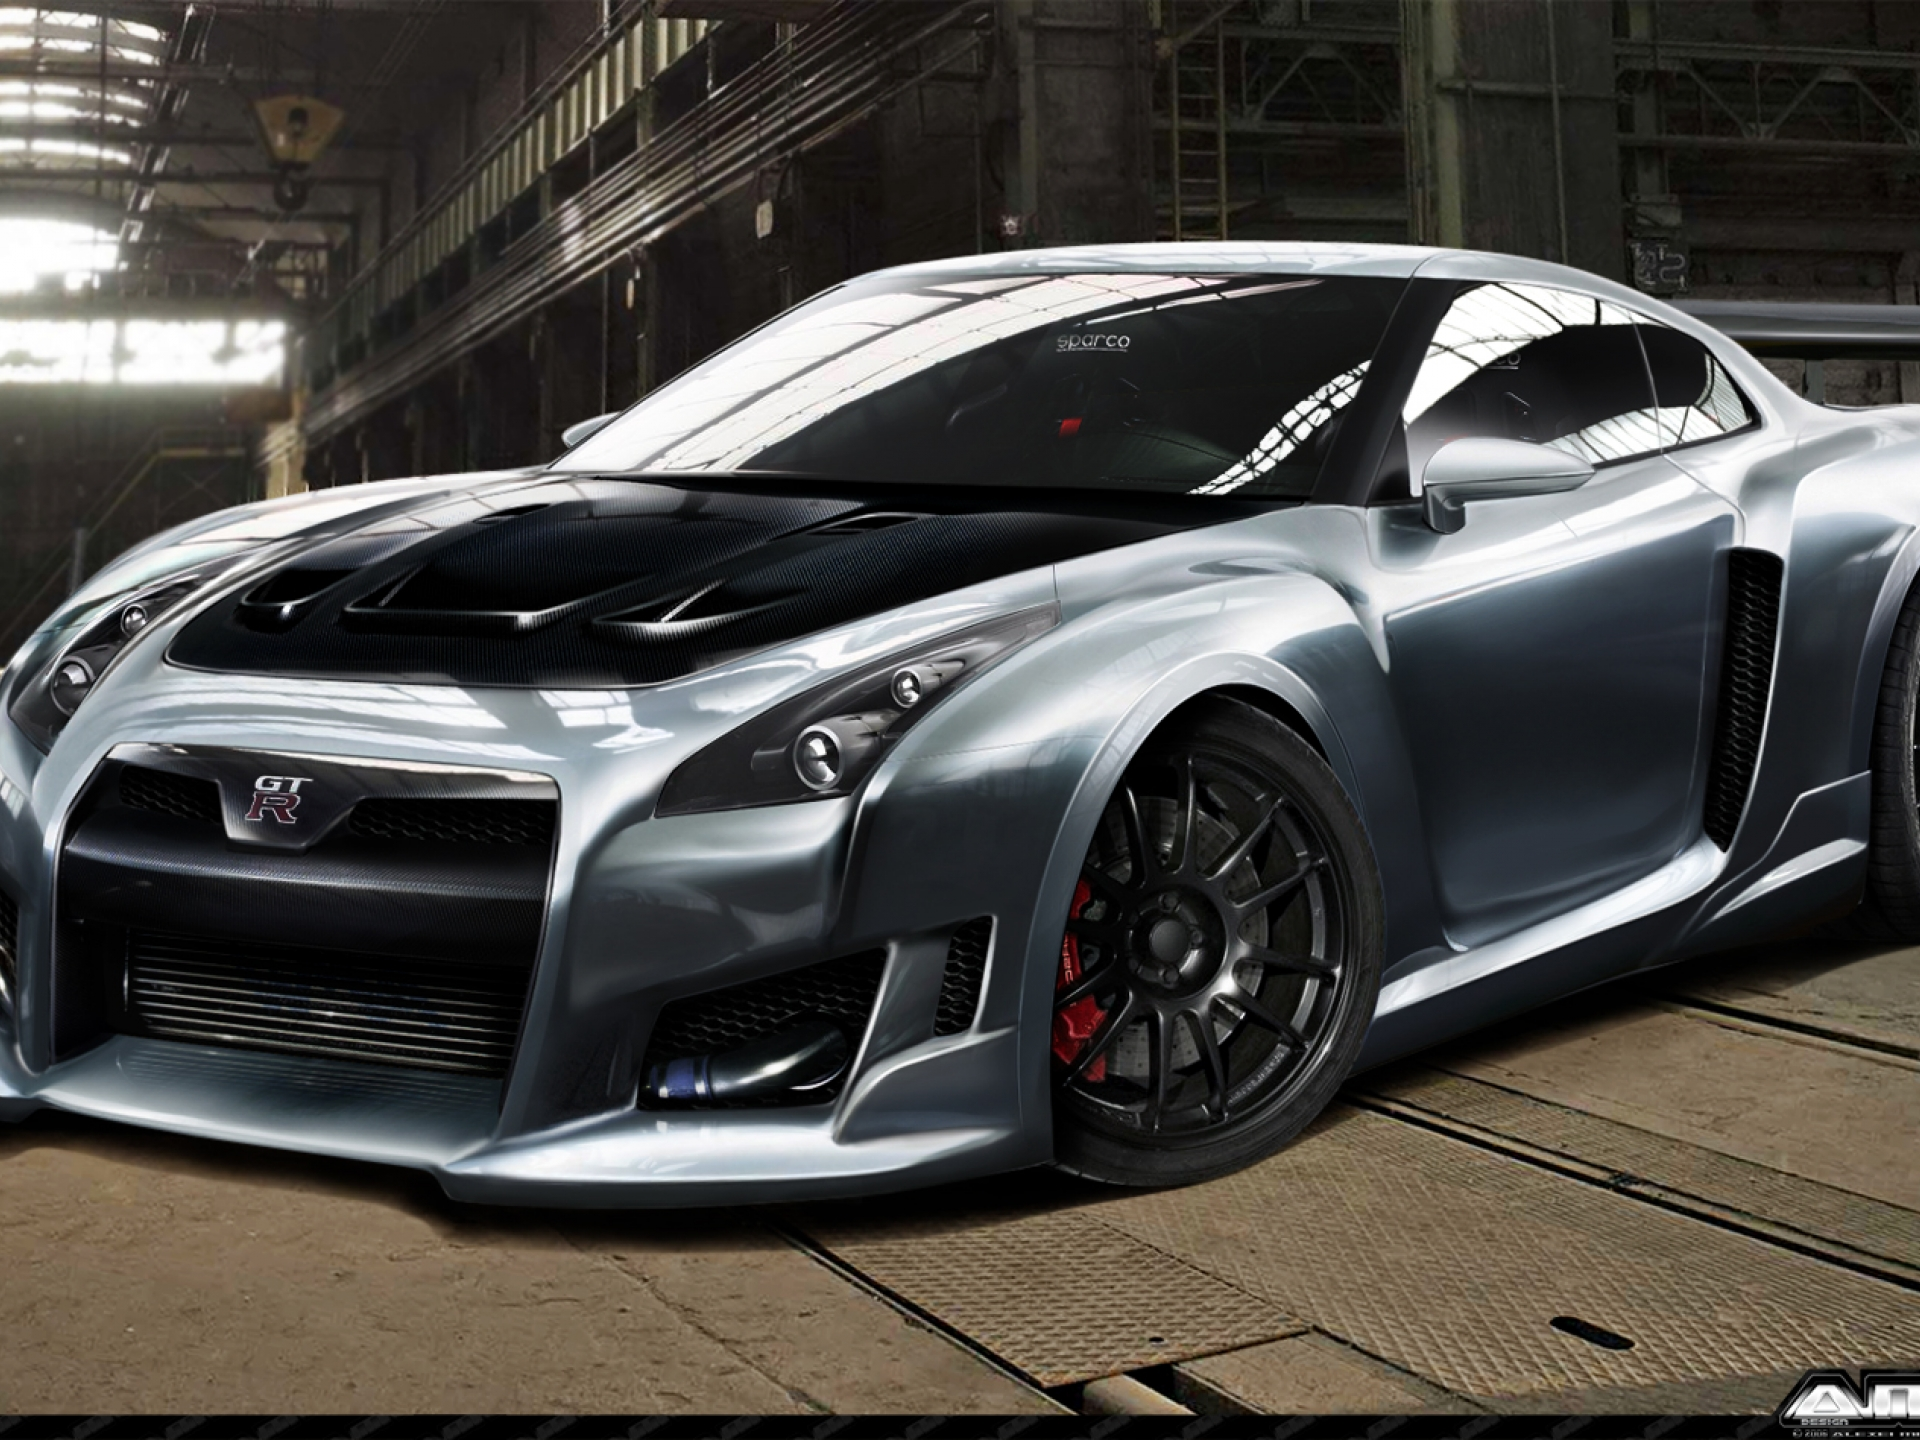 Cool Cars As Wallpaper Carros De Tuning 1501319 Wallpaper Wallpaper